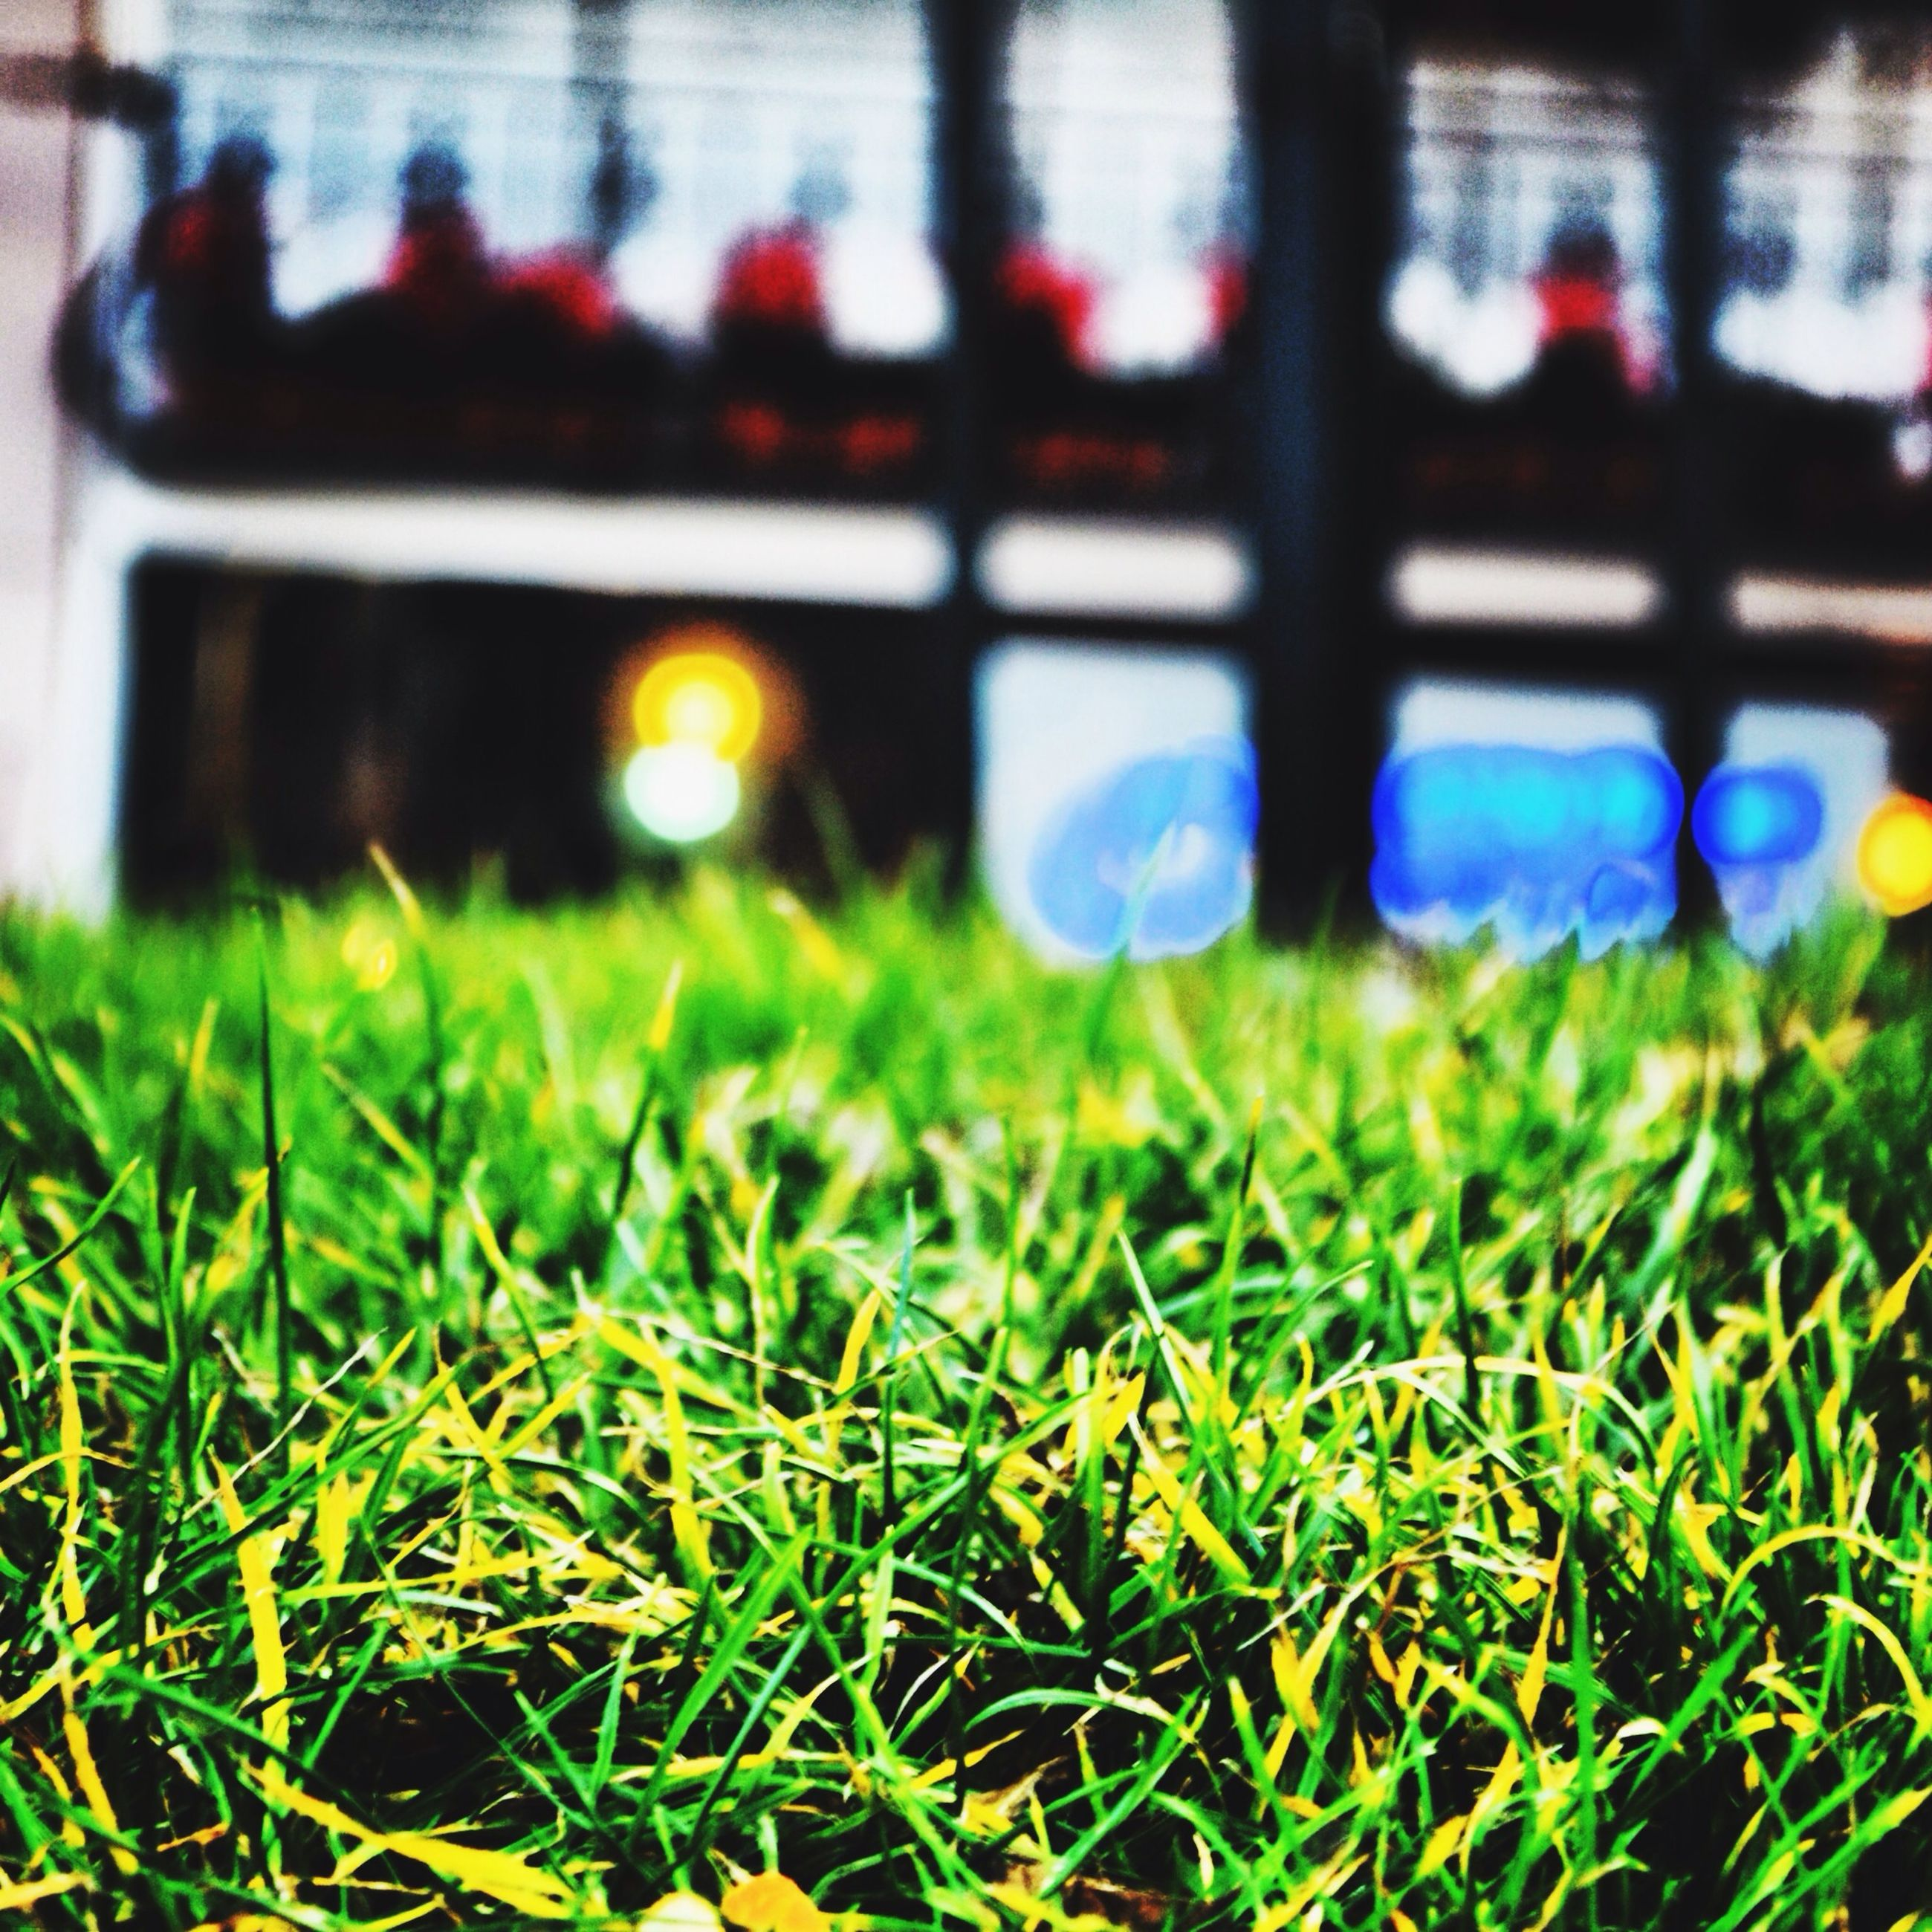 grass, grassy, green color, selective focus, field, focus on foreground, lawn, surface level, close-up, blade of grass, grassland, outdoors, no people, day, nature, park - man made space, green, growth, plant, incidental people